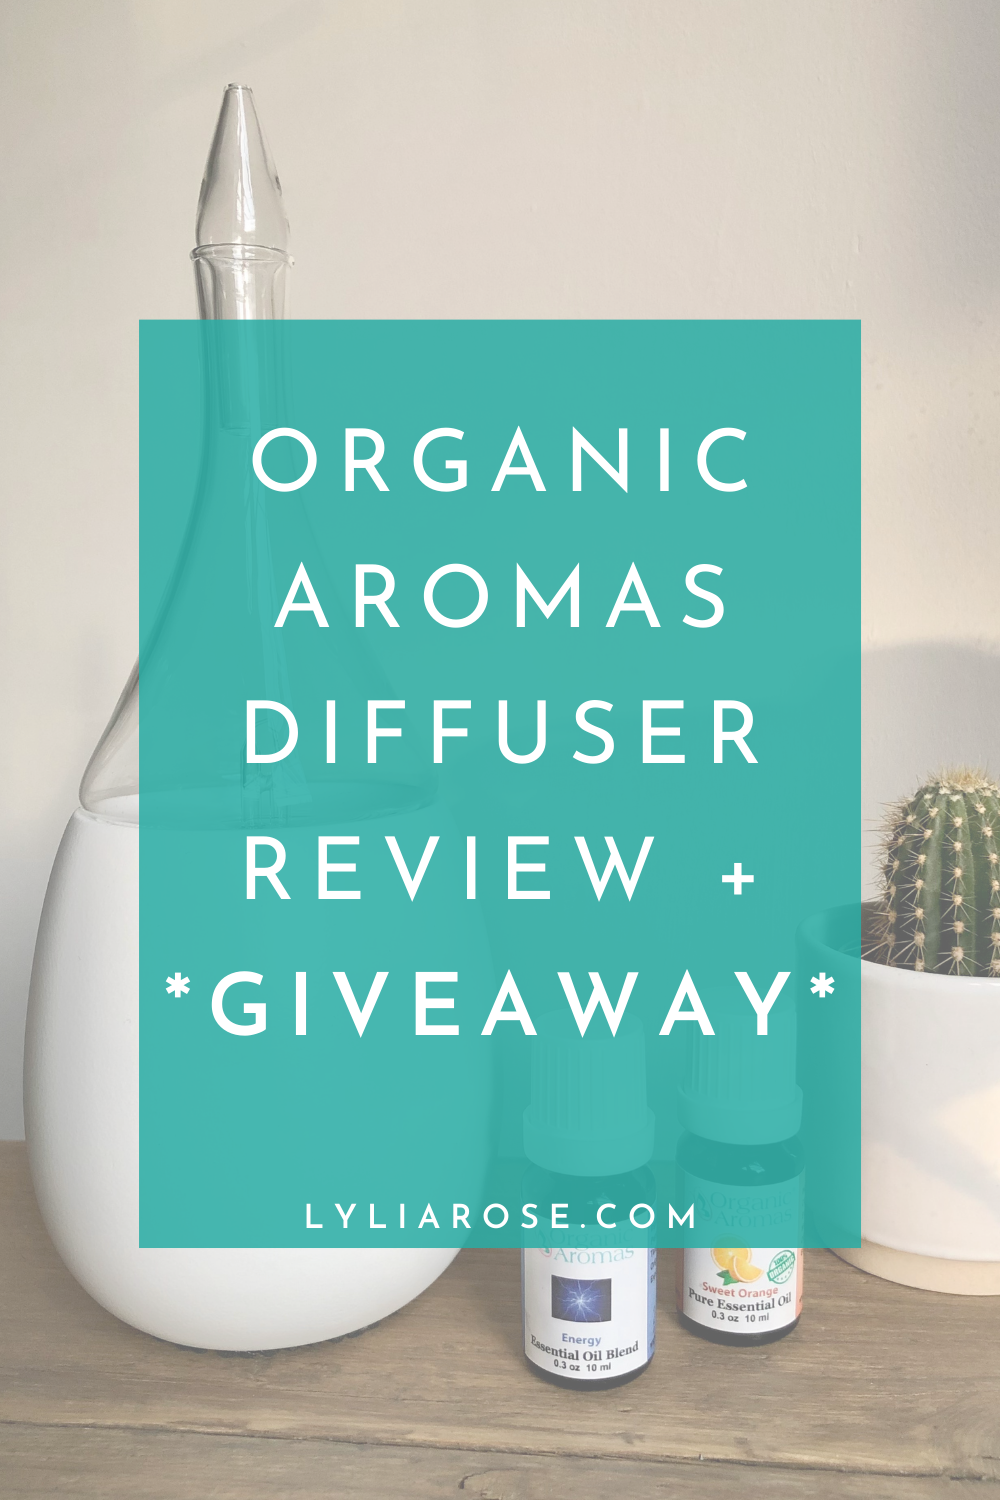 Organic Aromas diffuser review + giveaway